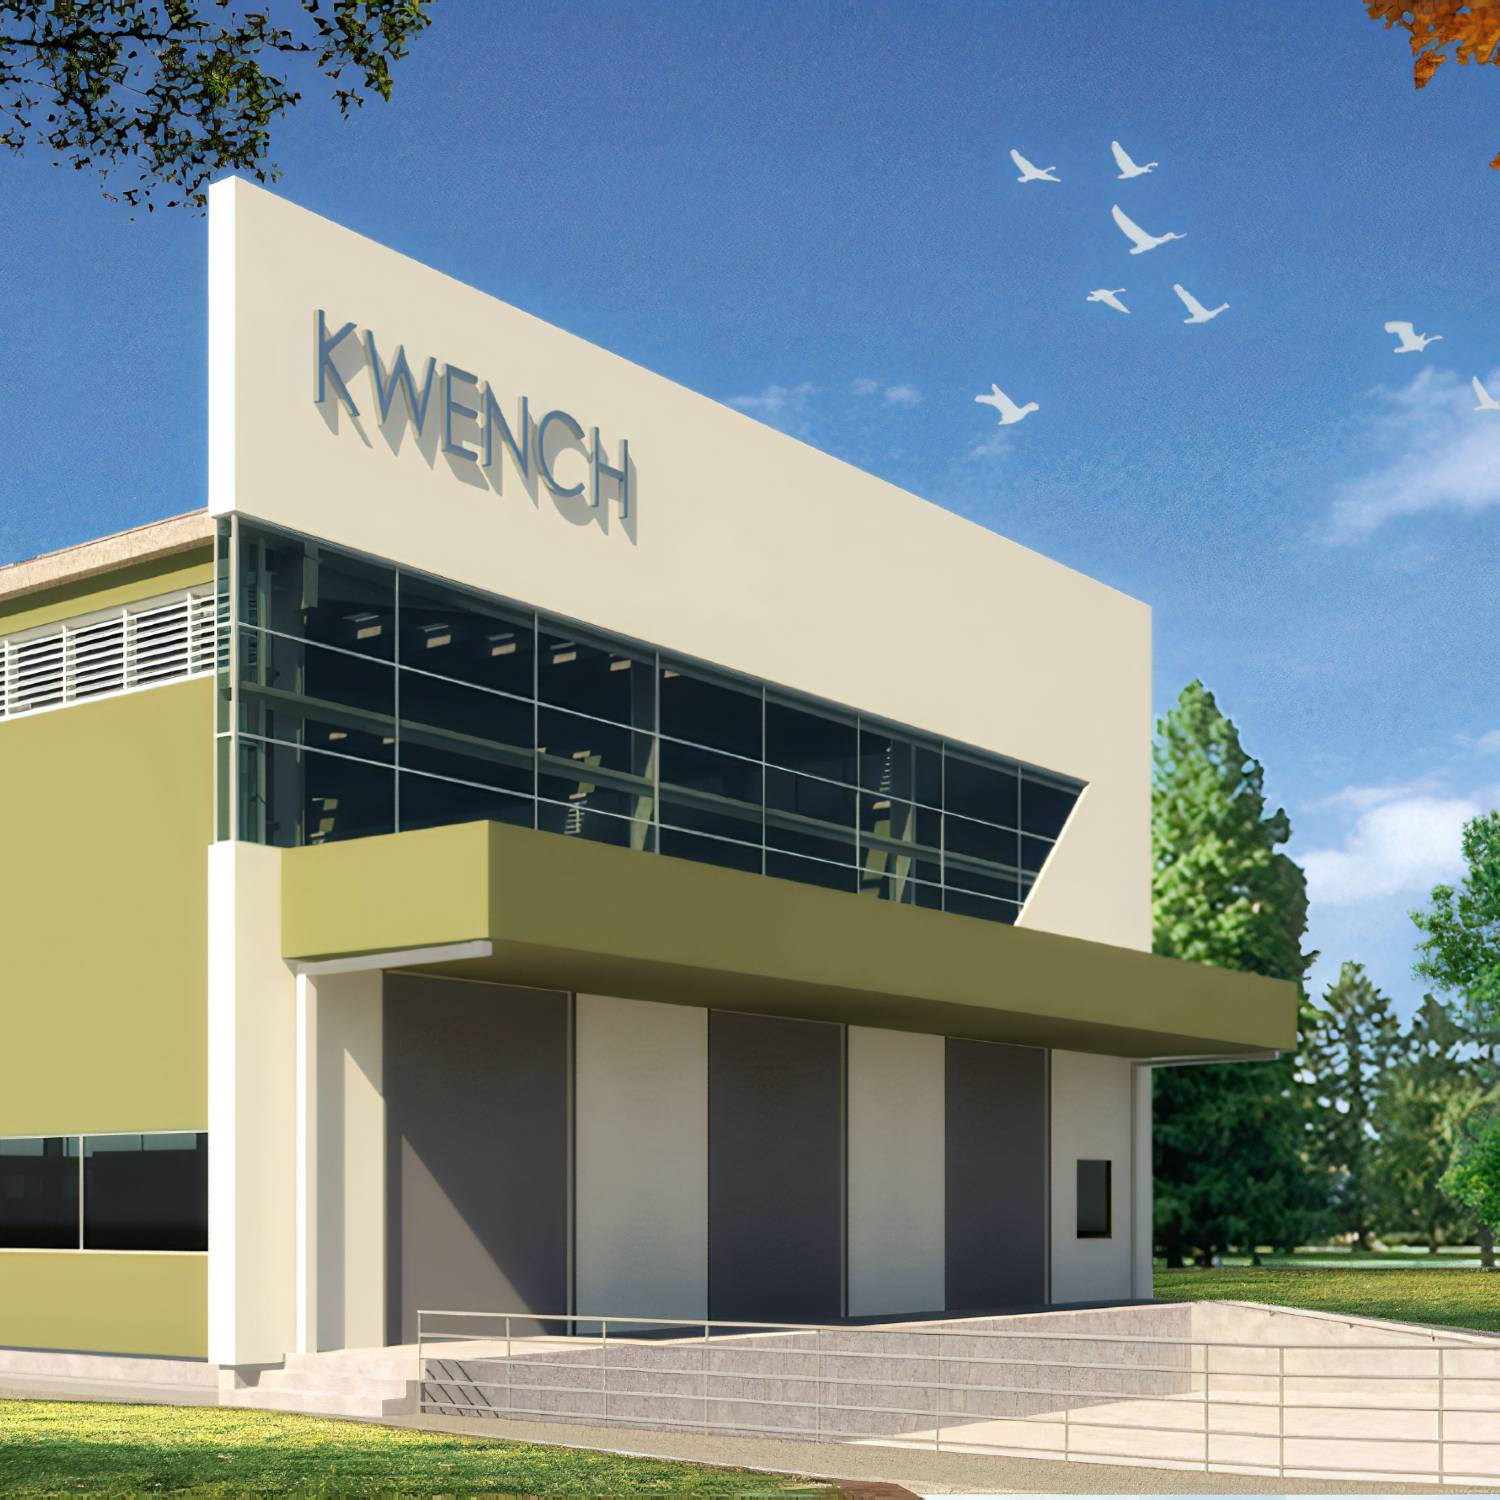 Kwench Plant Industrial Architecture front facade view